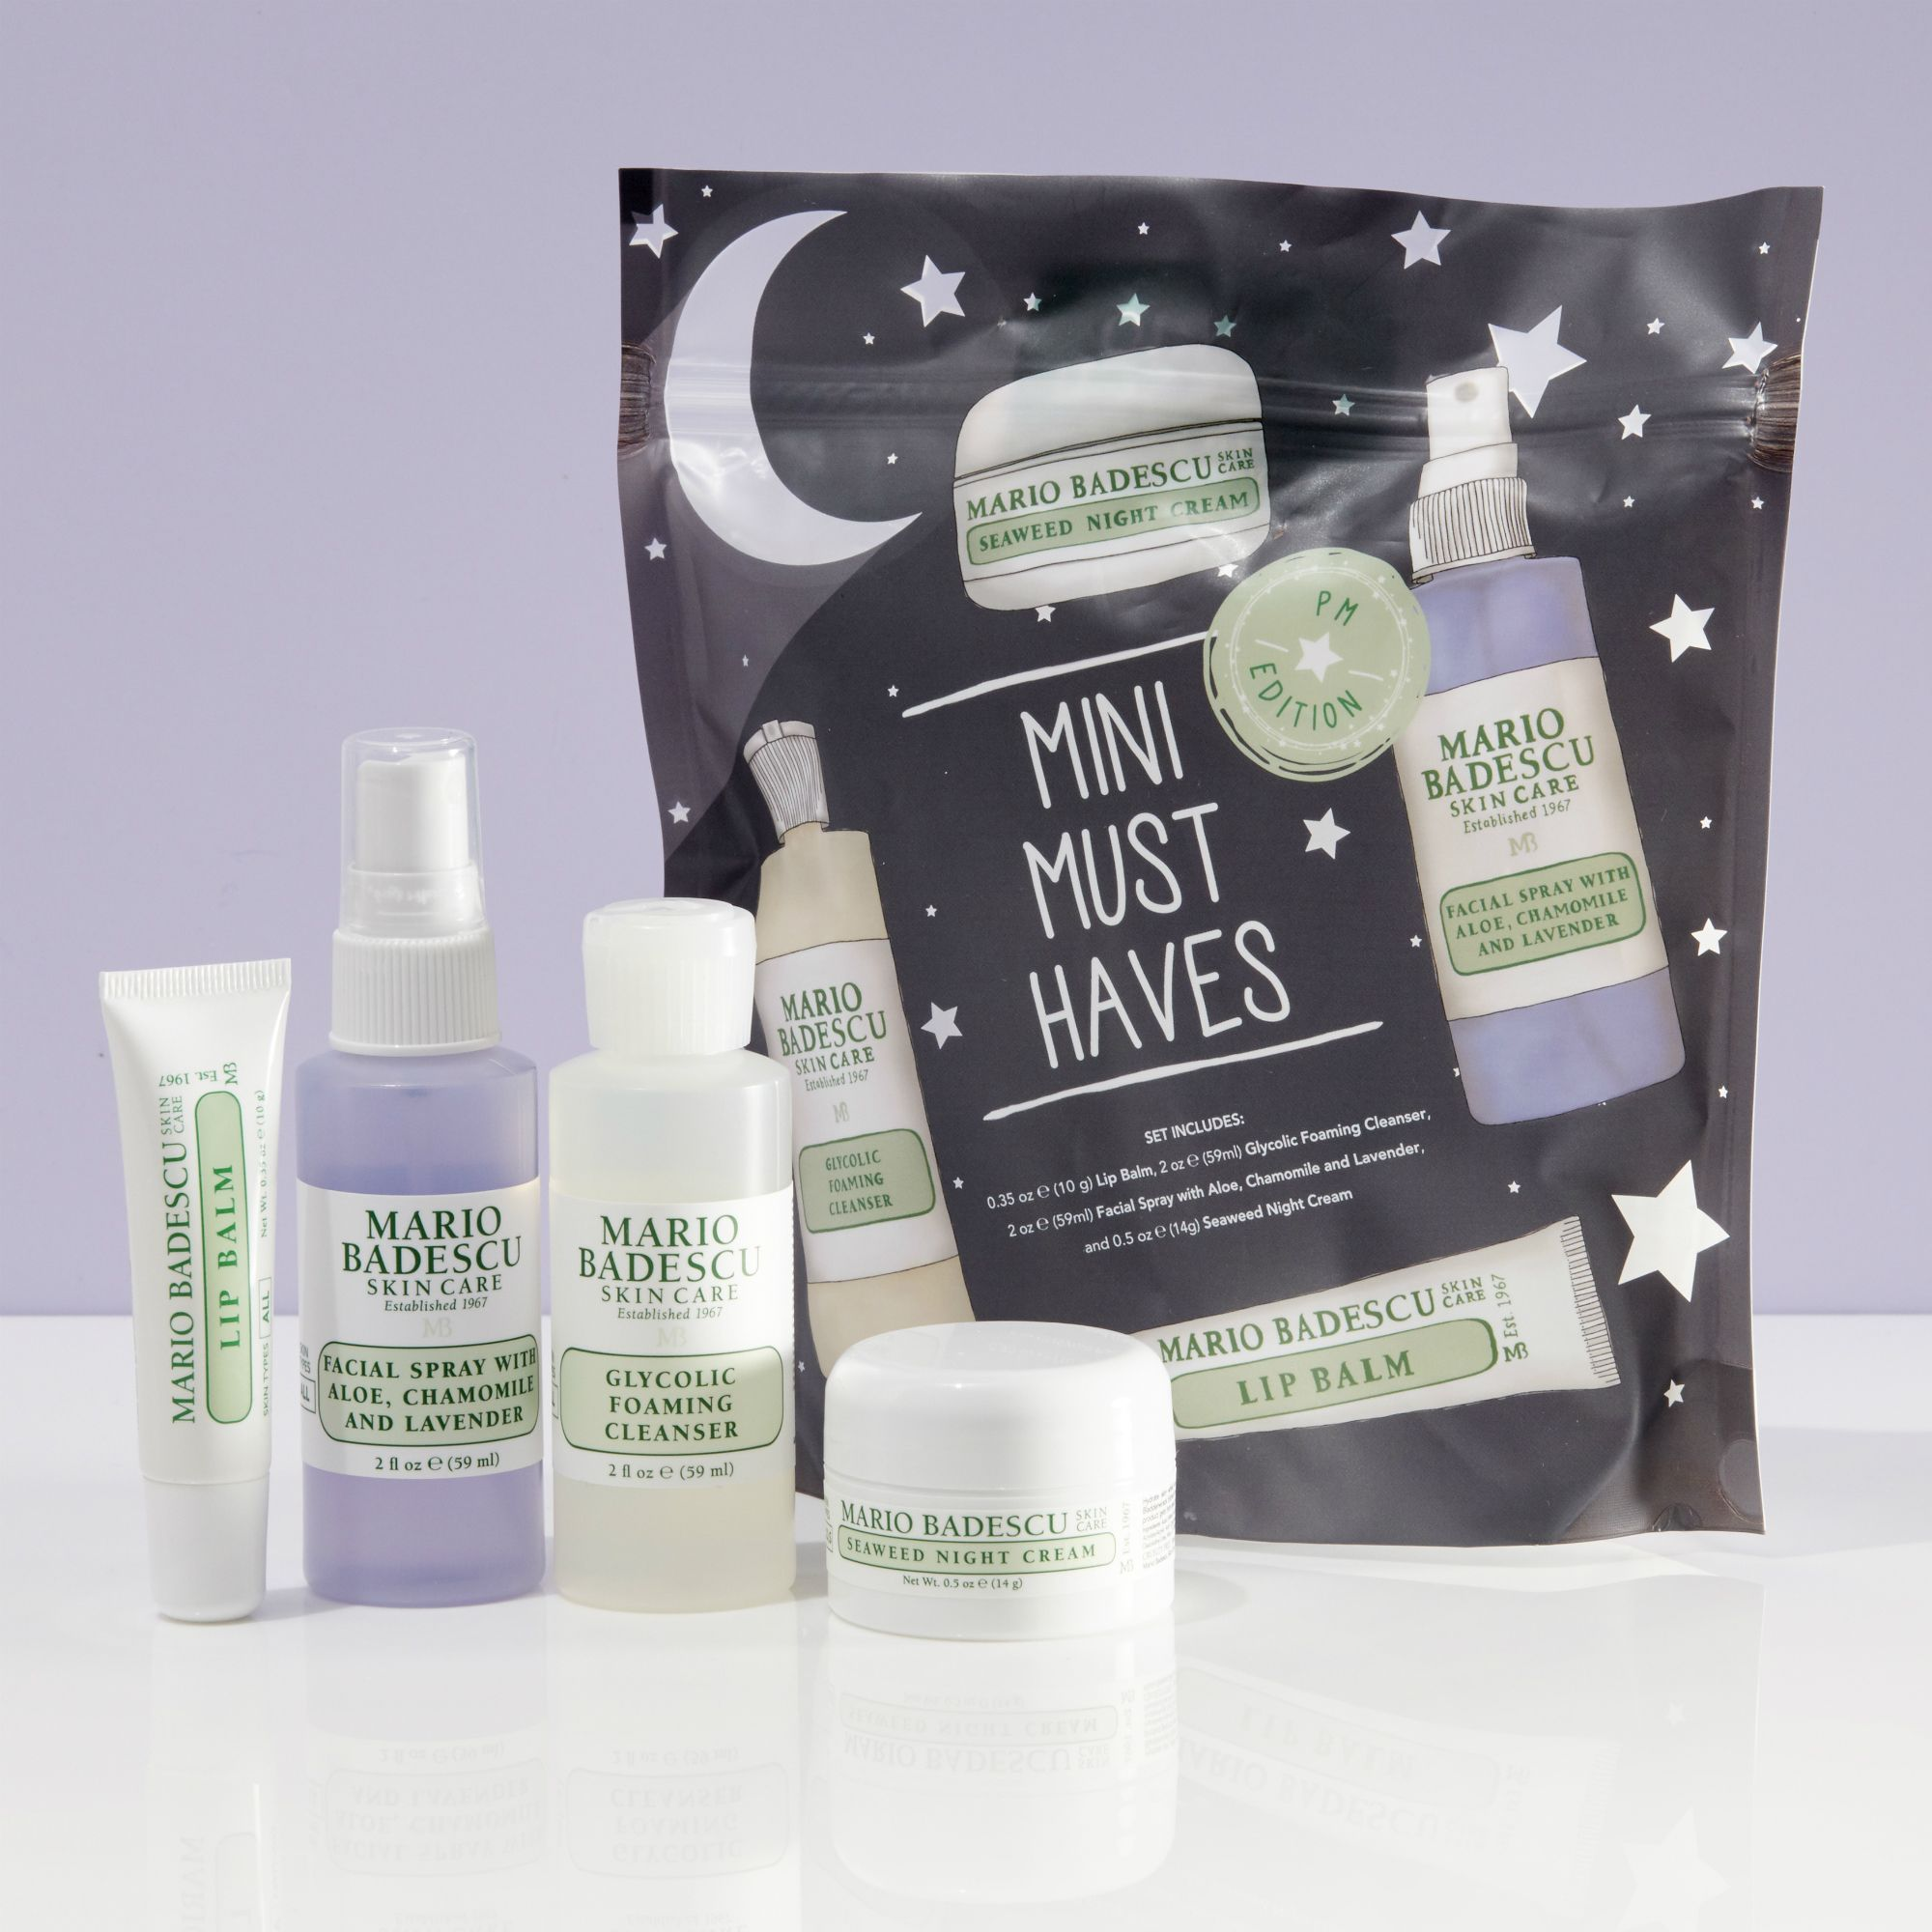 Mario Badescu Mini Must Haves Set Pm Edition In 2020 Skin Care Kit Mario Badescu Affordable Skin Care